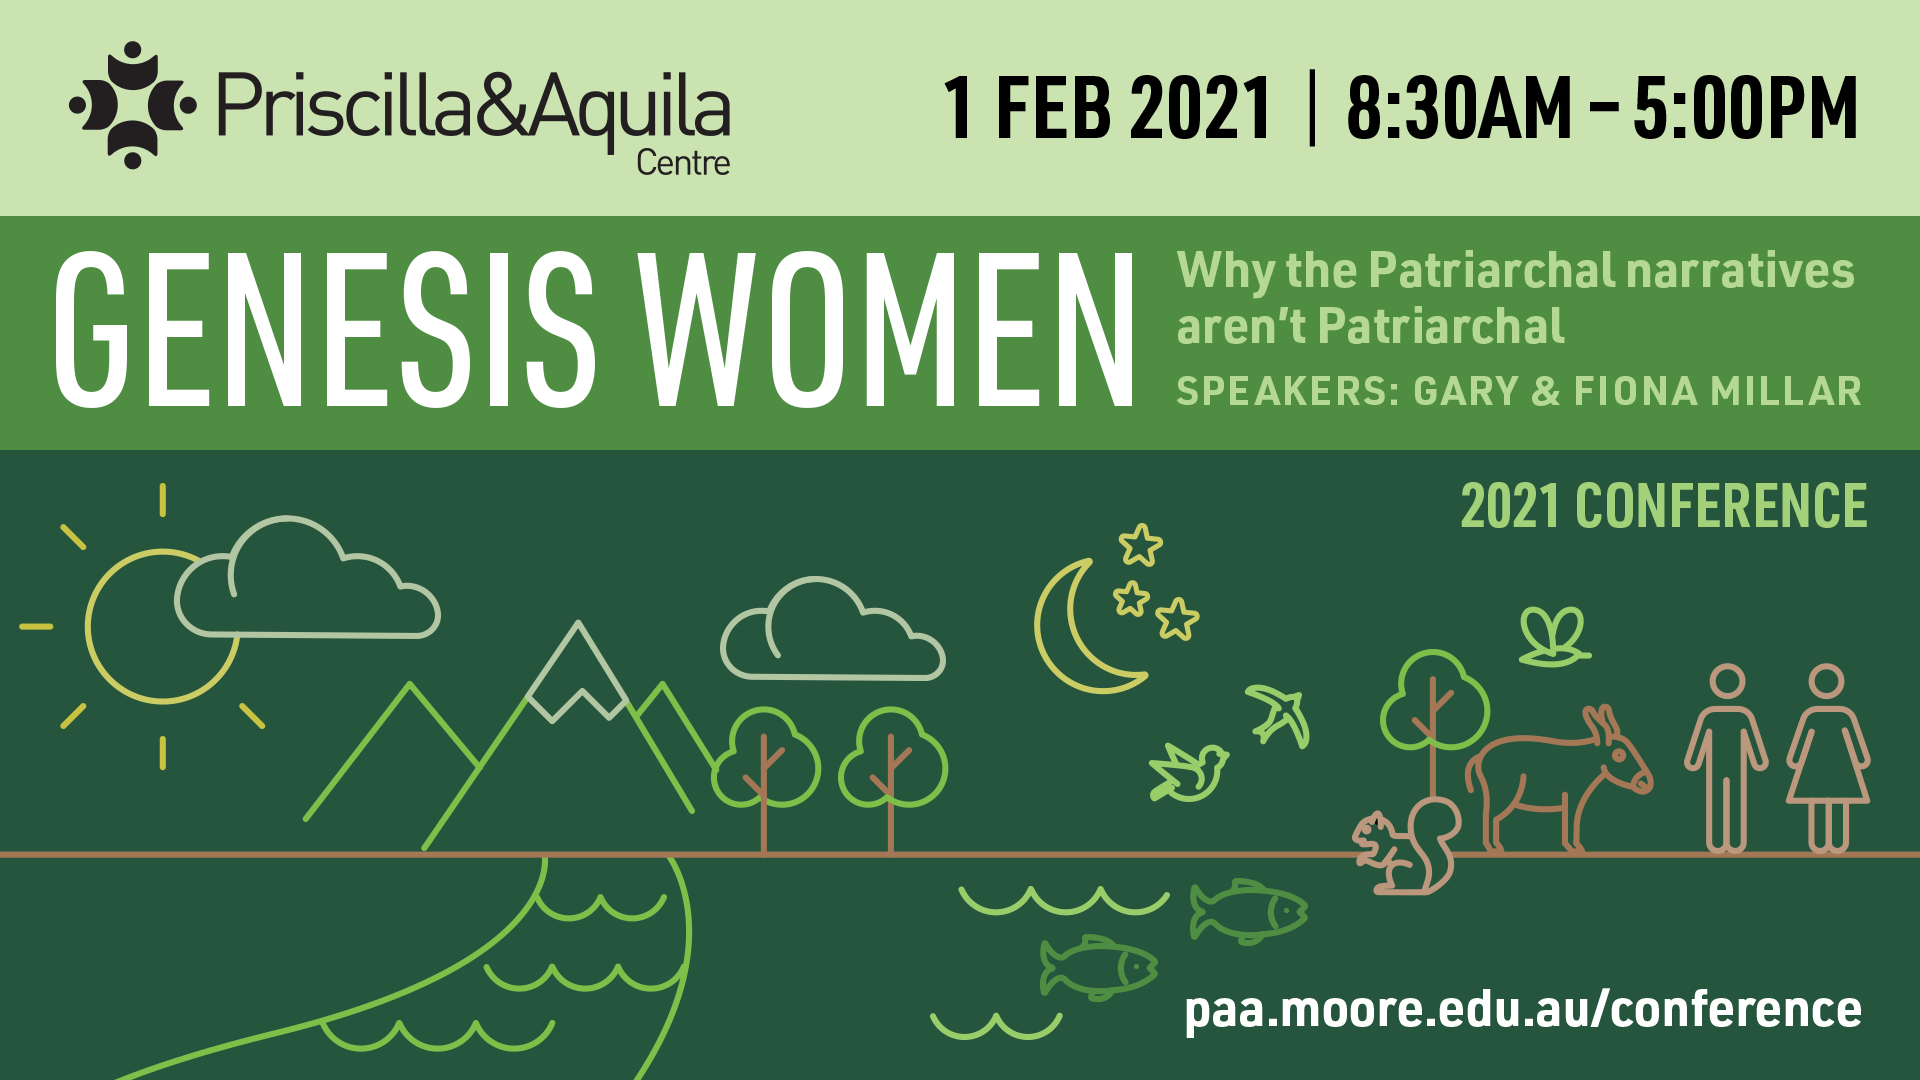 P&A 2021 conference: Genesis women